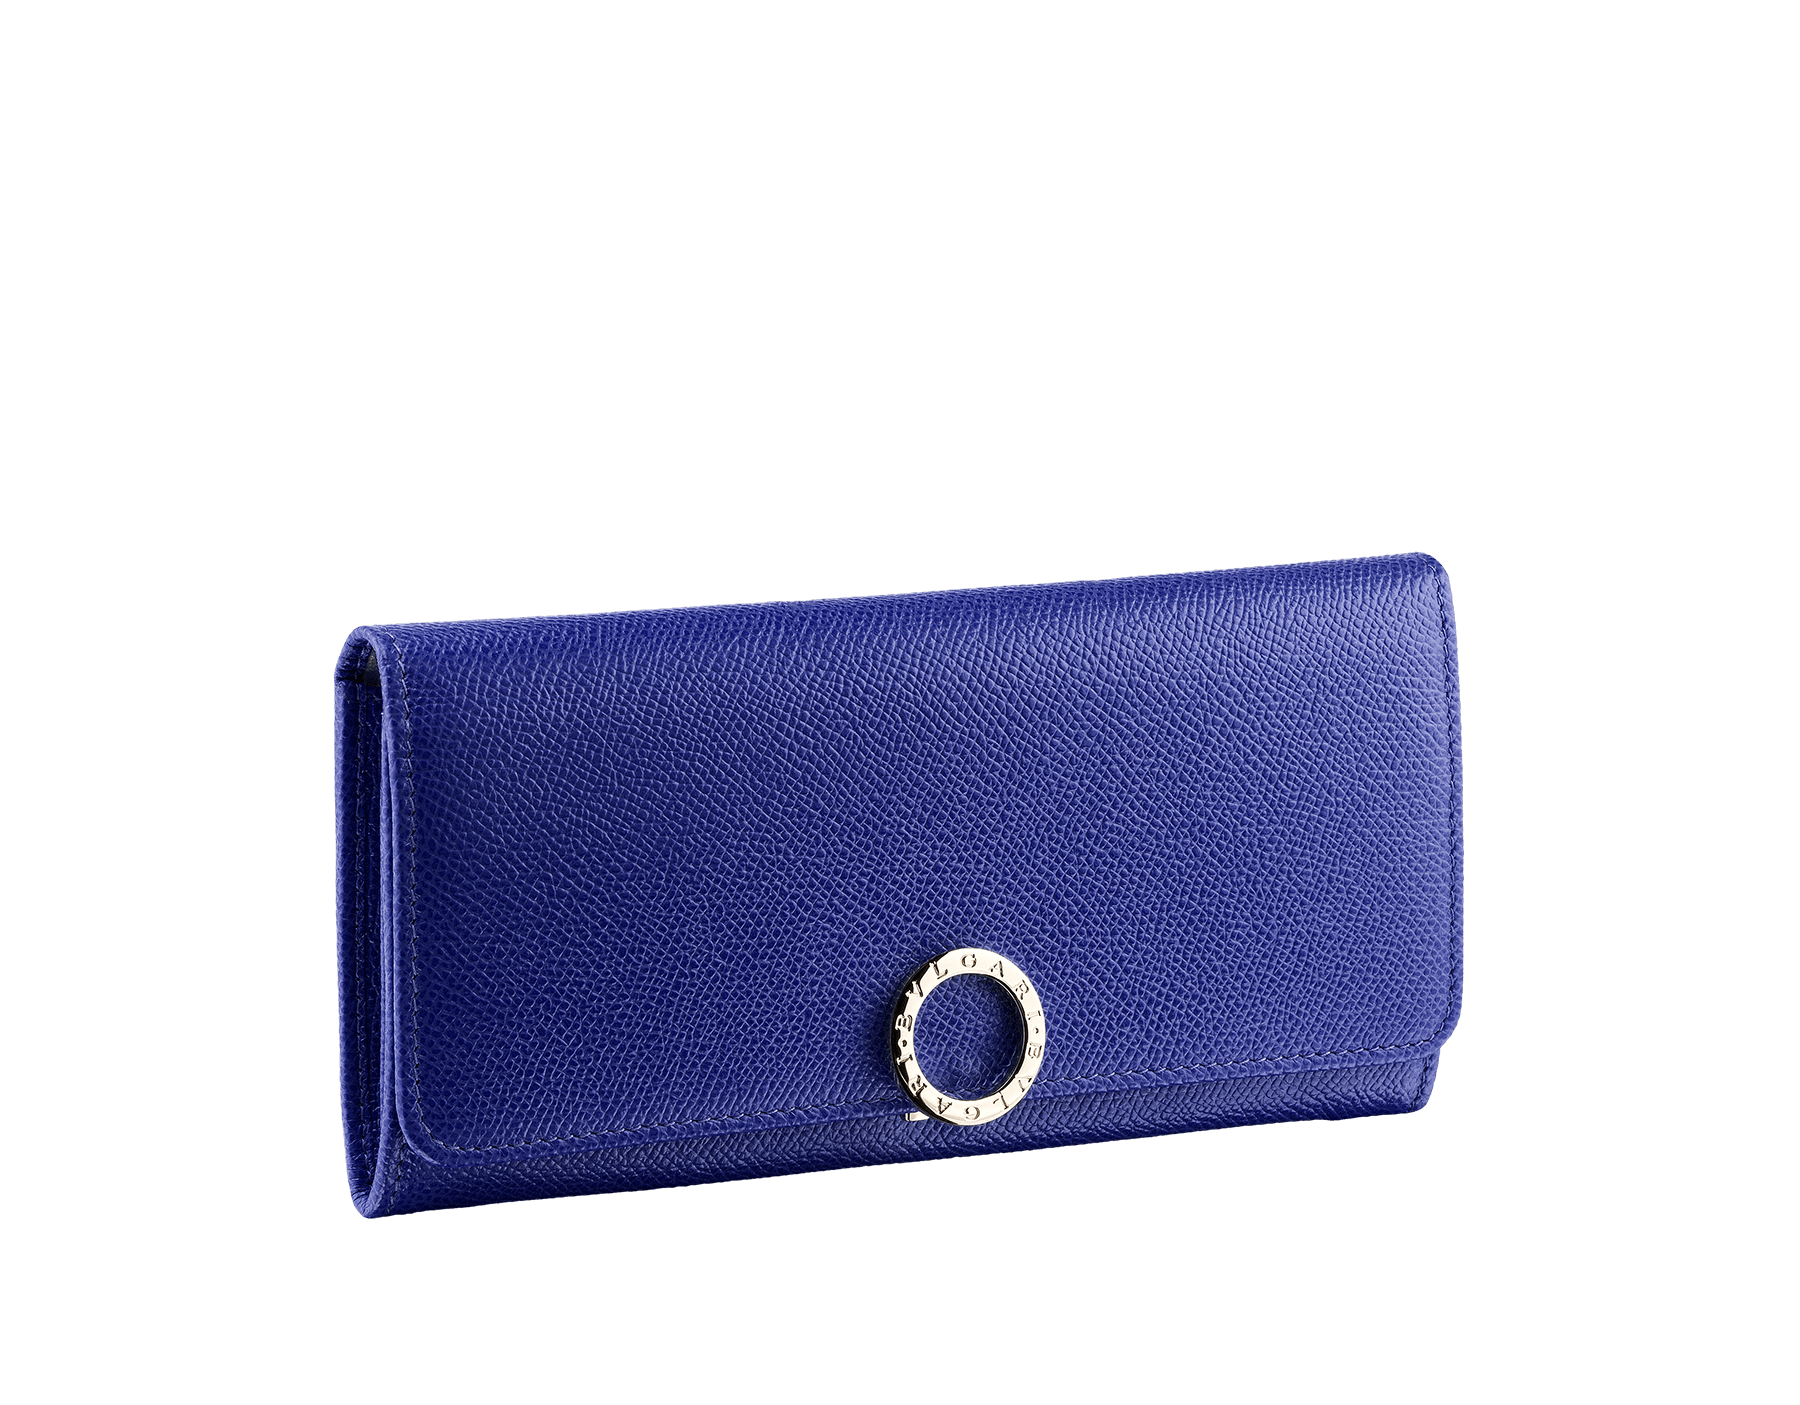 Wallet pochette in royal sapphire bright grain calf leather and teal topaz nappa with plum amethyst nappa lining. Brass light gold plated hardware and iconic BVLGARI BVLGARI closure clip. Nine credit card slots, two bill compartments, one zipped coin case. Also available in other colours. 19 x 9 cm. - 7.5 x 3.5 281443 image 1